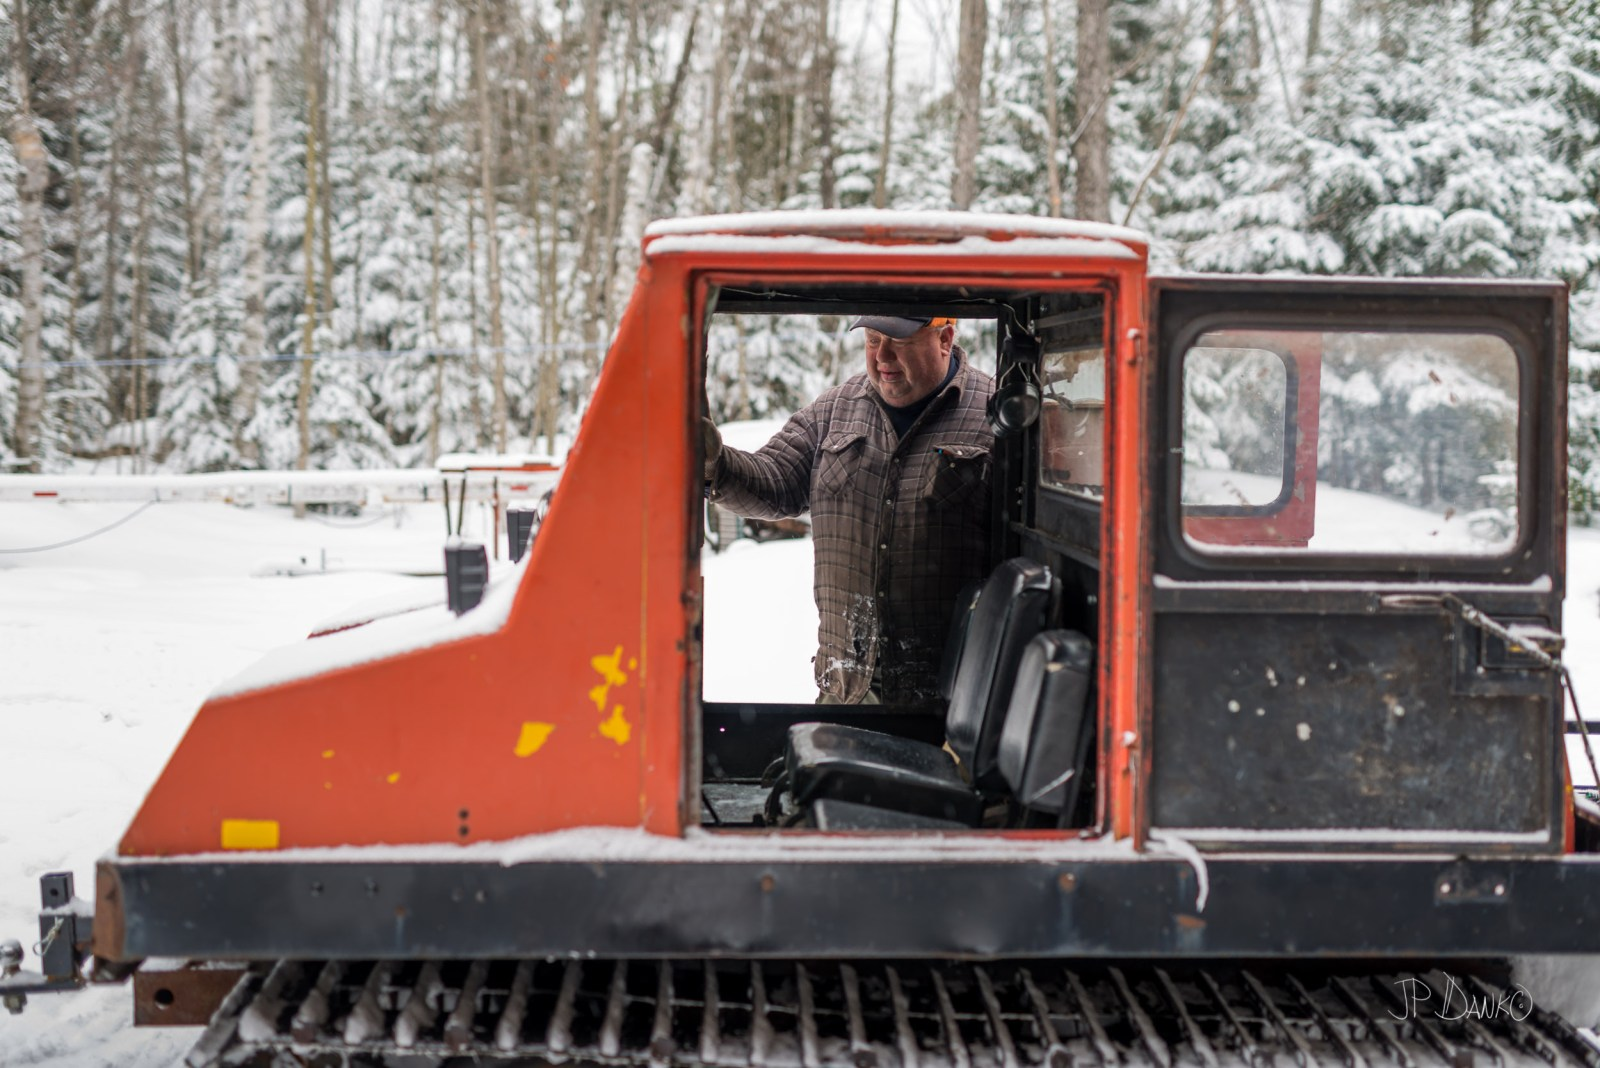 Rustic northern Ontario man steps into cab of snow grooming machine